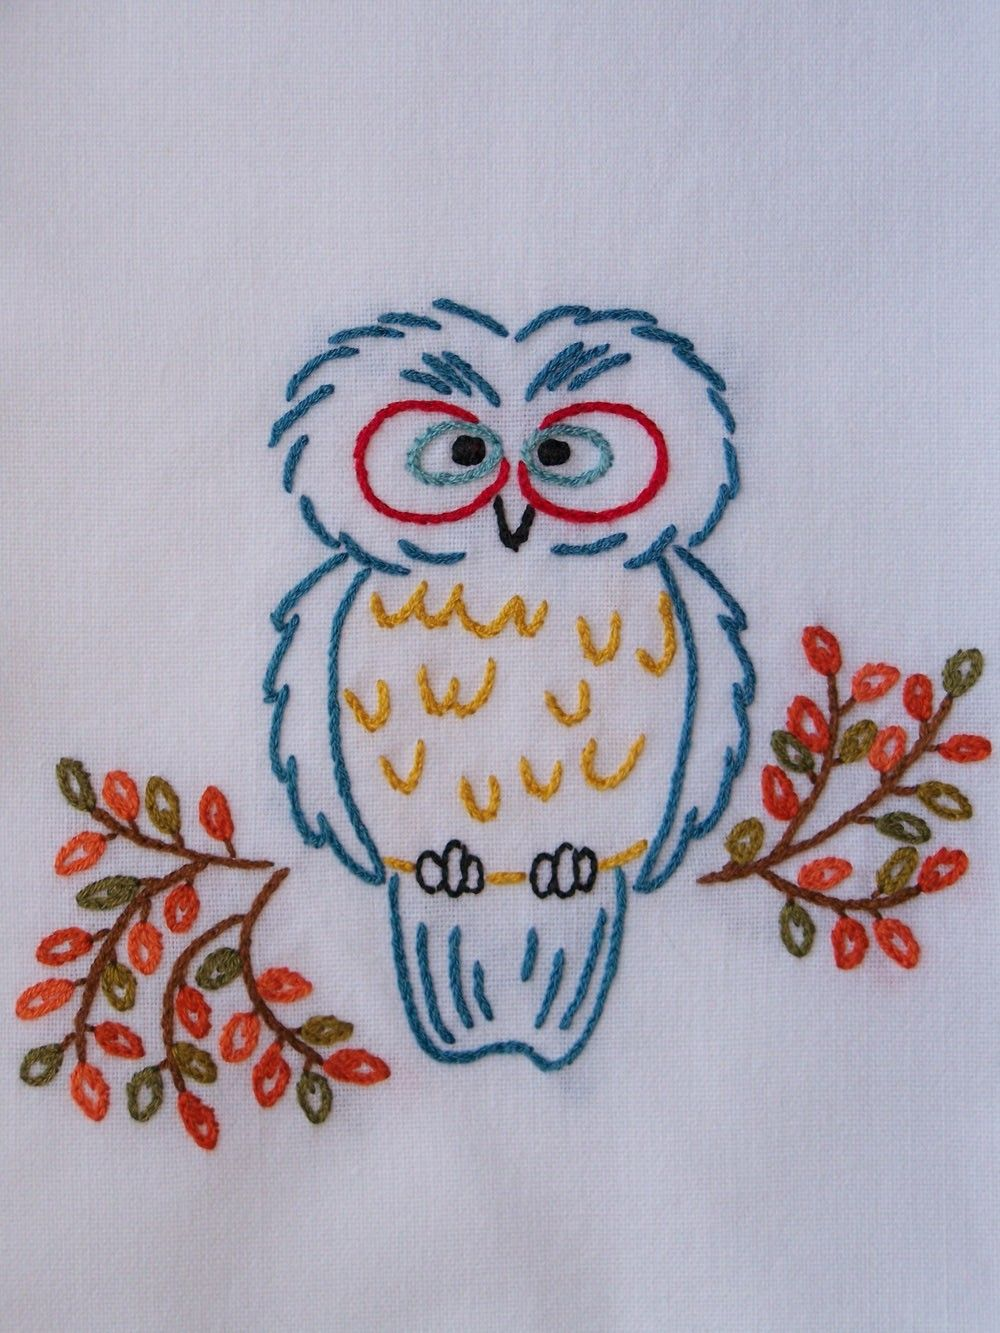 Quirky retro owl hand embroidered tea toweldish toweltowel quirky retro owl hand embroidered tea toweldish toweltowel owl embroideryembroidery patternsmachine bankloansurffo Image collections